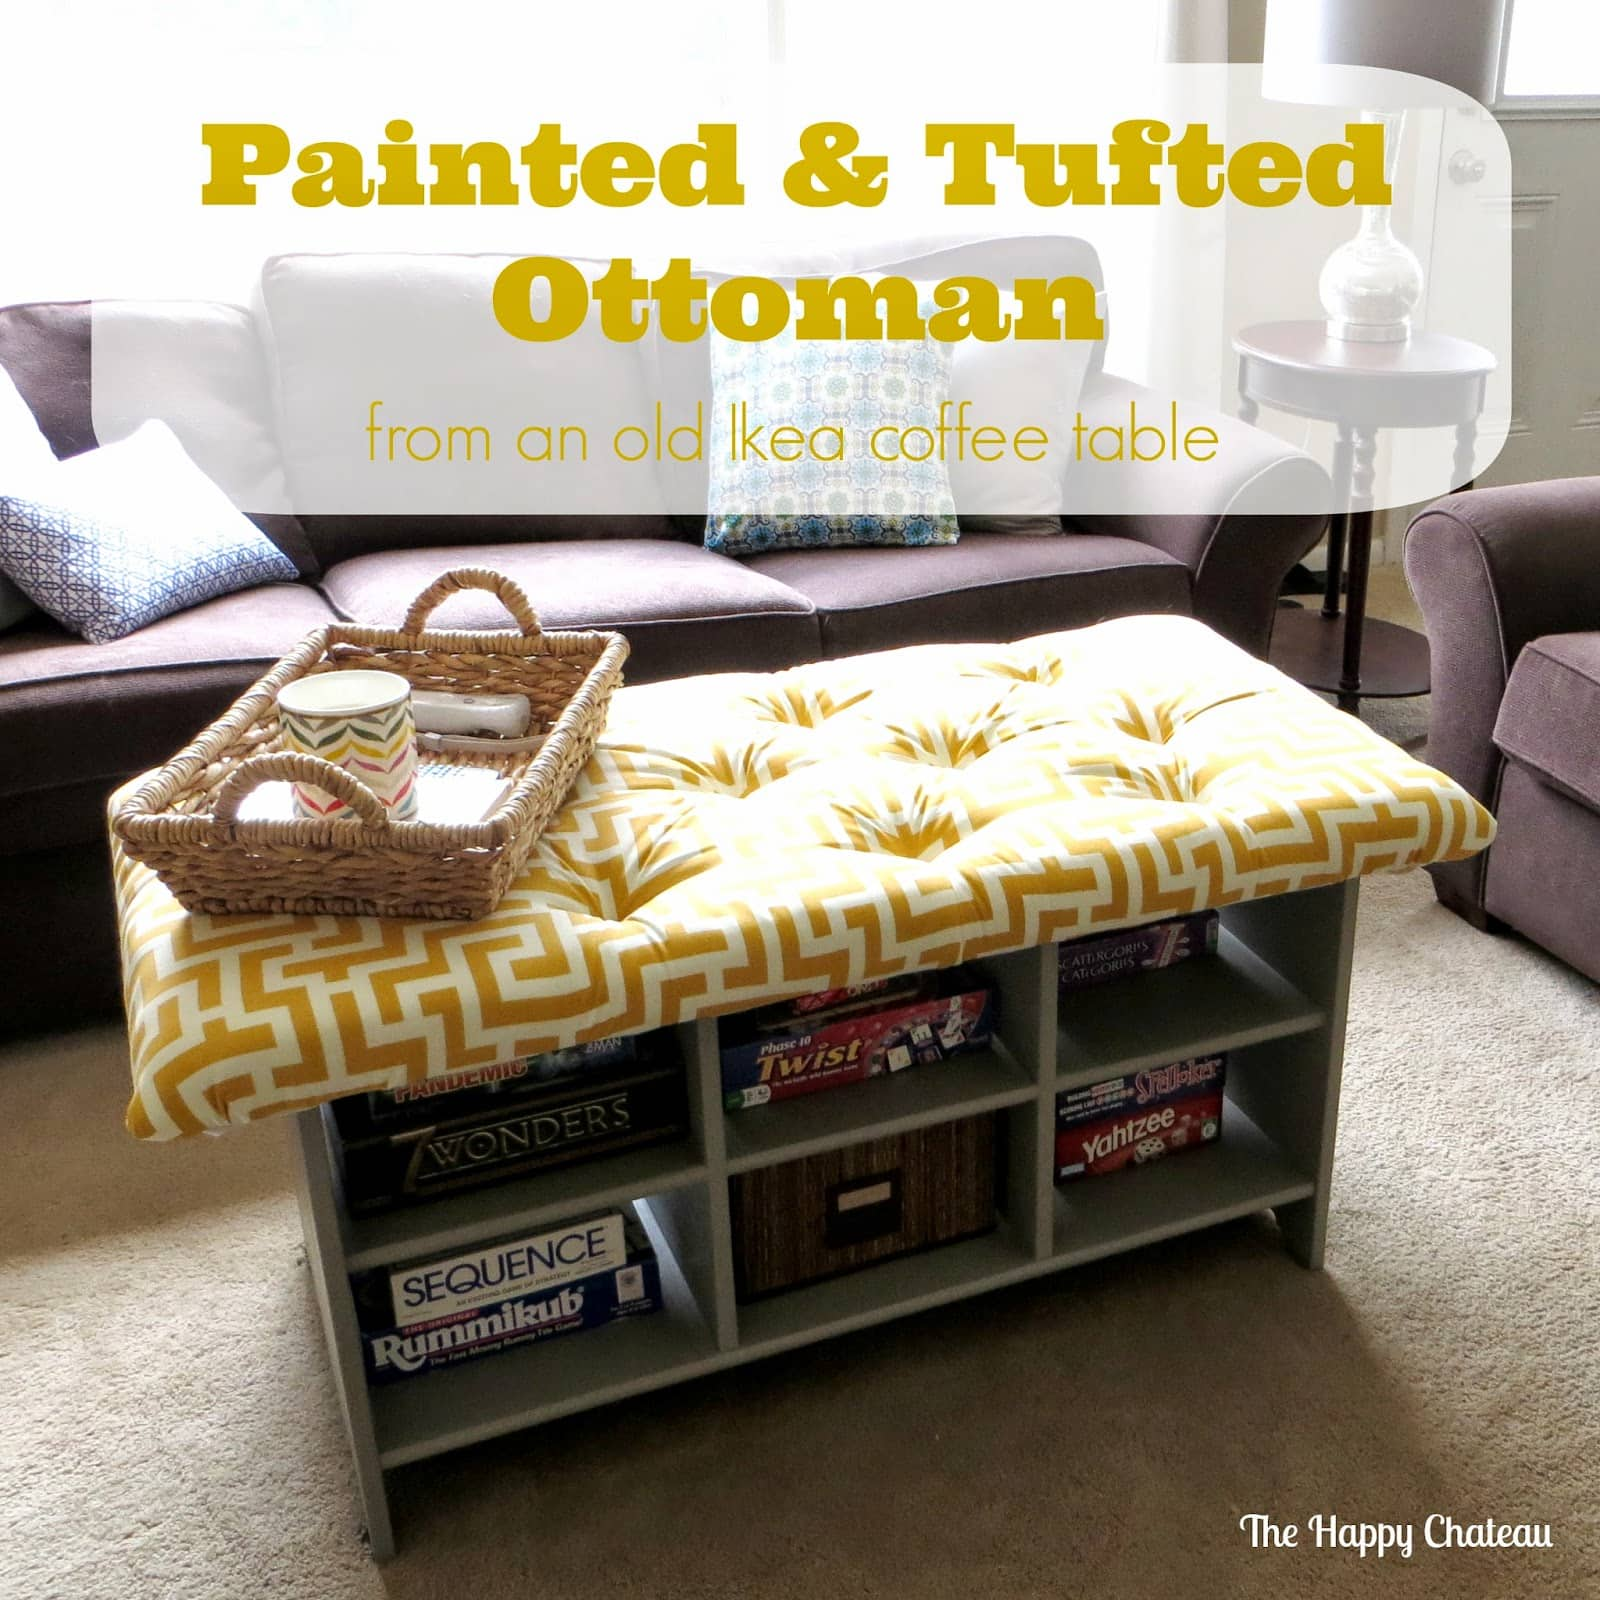 Painted & Tufted Ottoman - The Happy Chateau